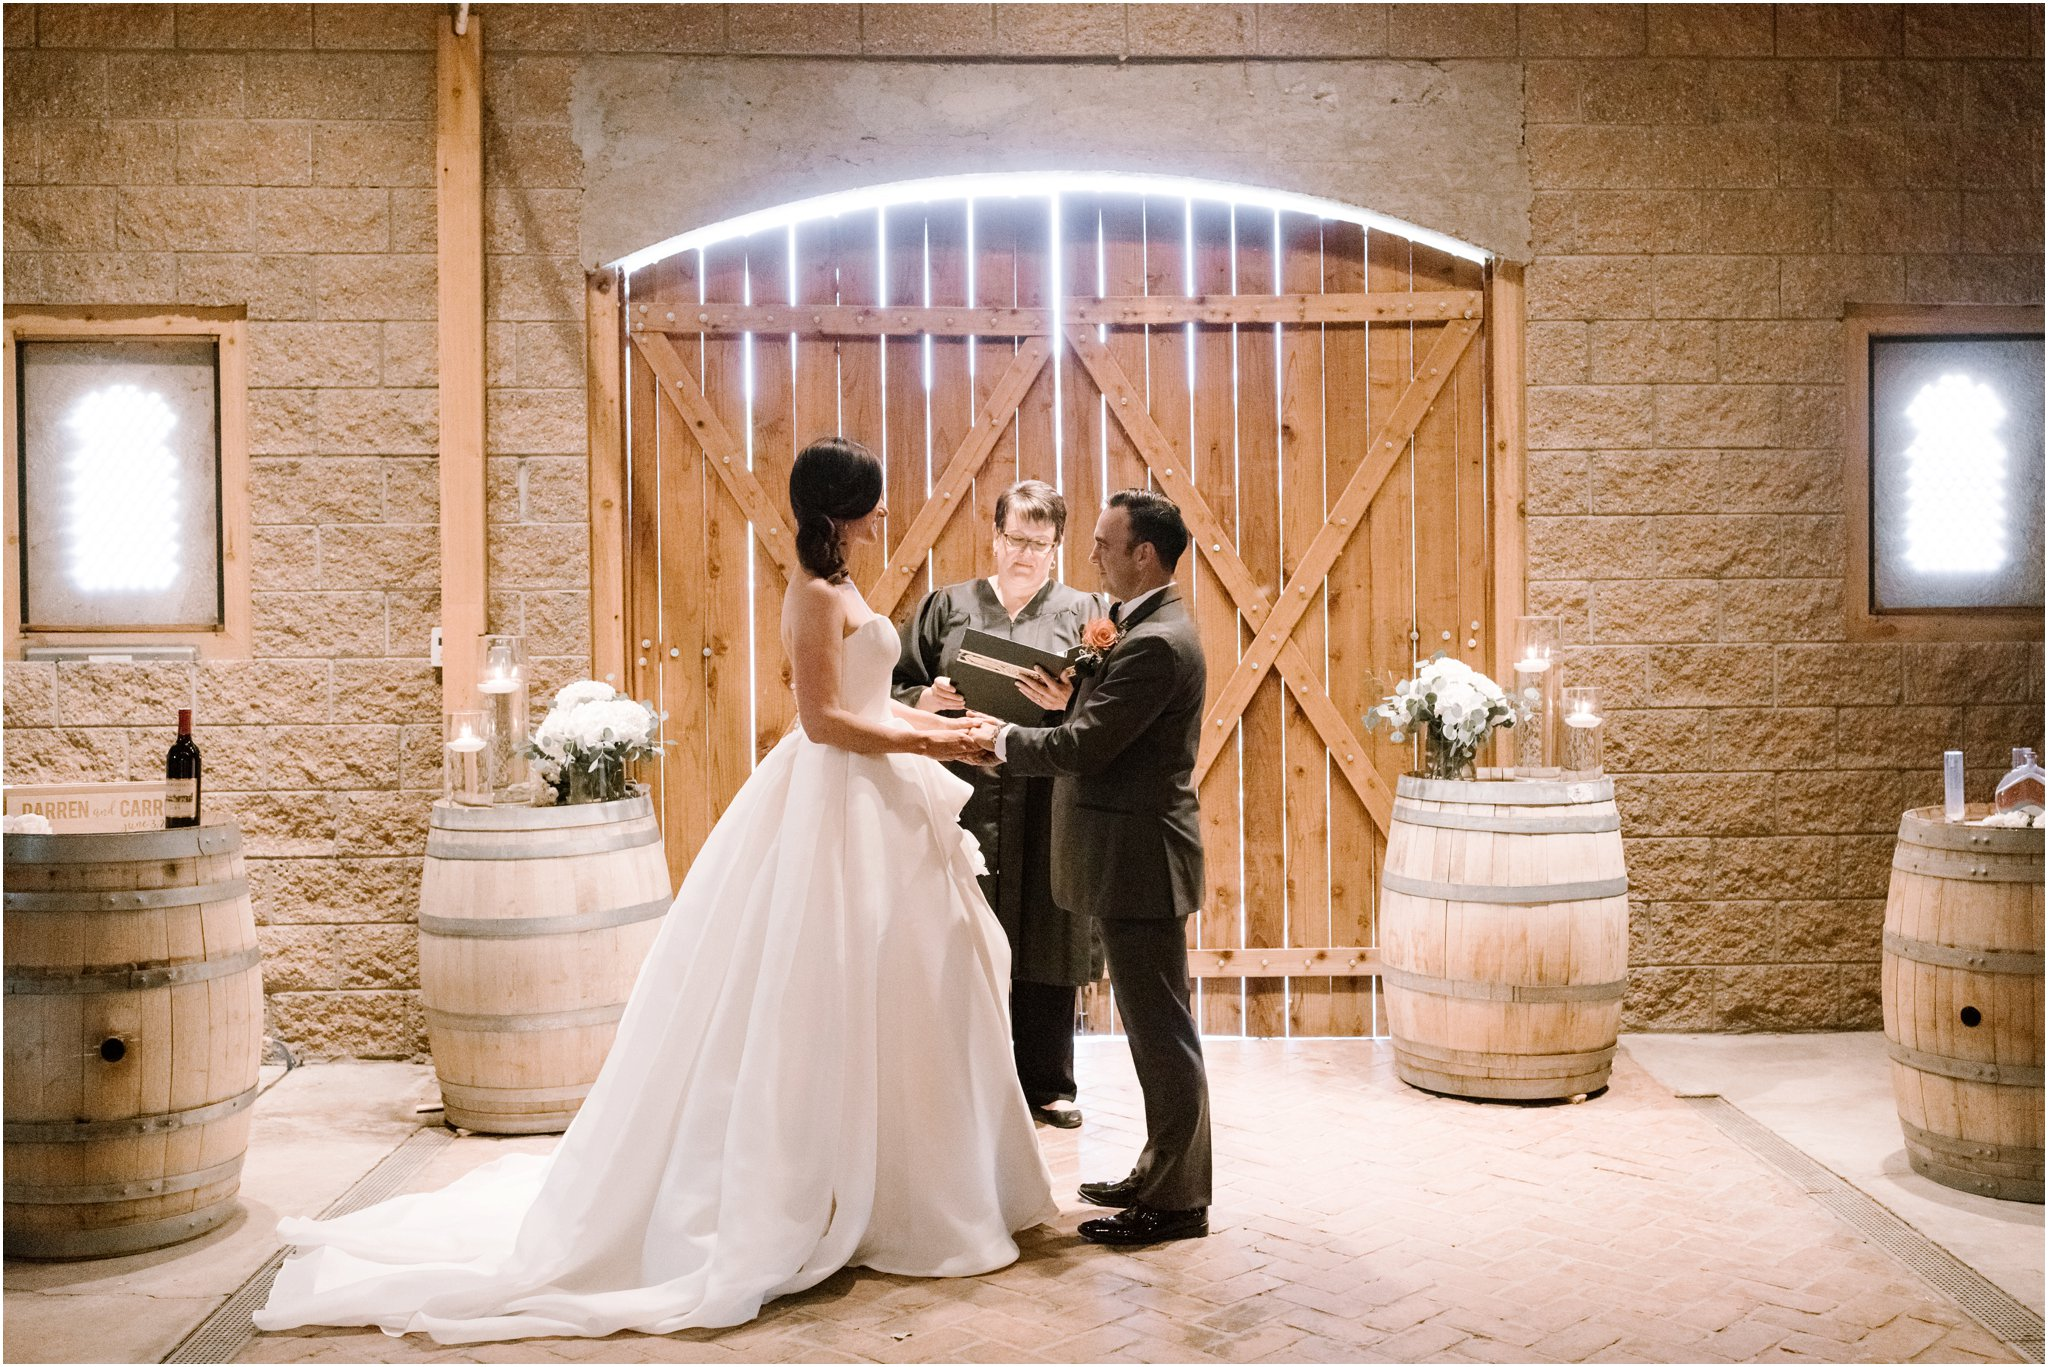 0205Casa Rodena Winery Wedding, Inn and Spa at Loretto wedding, Santa Fe wedding photographers, blue rose photography